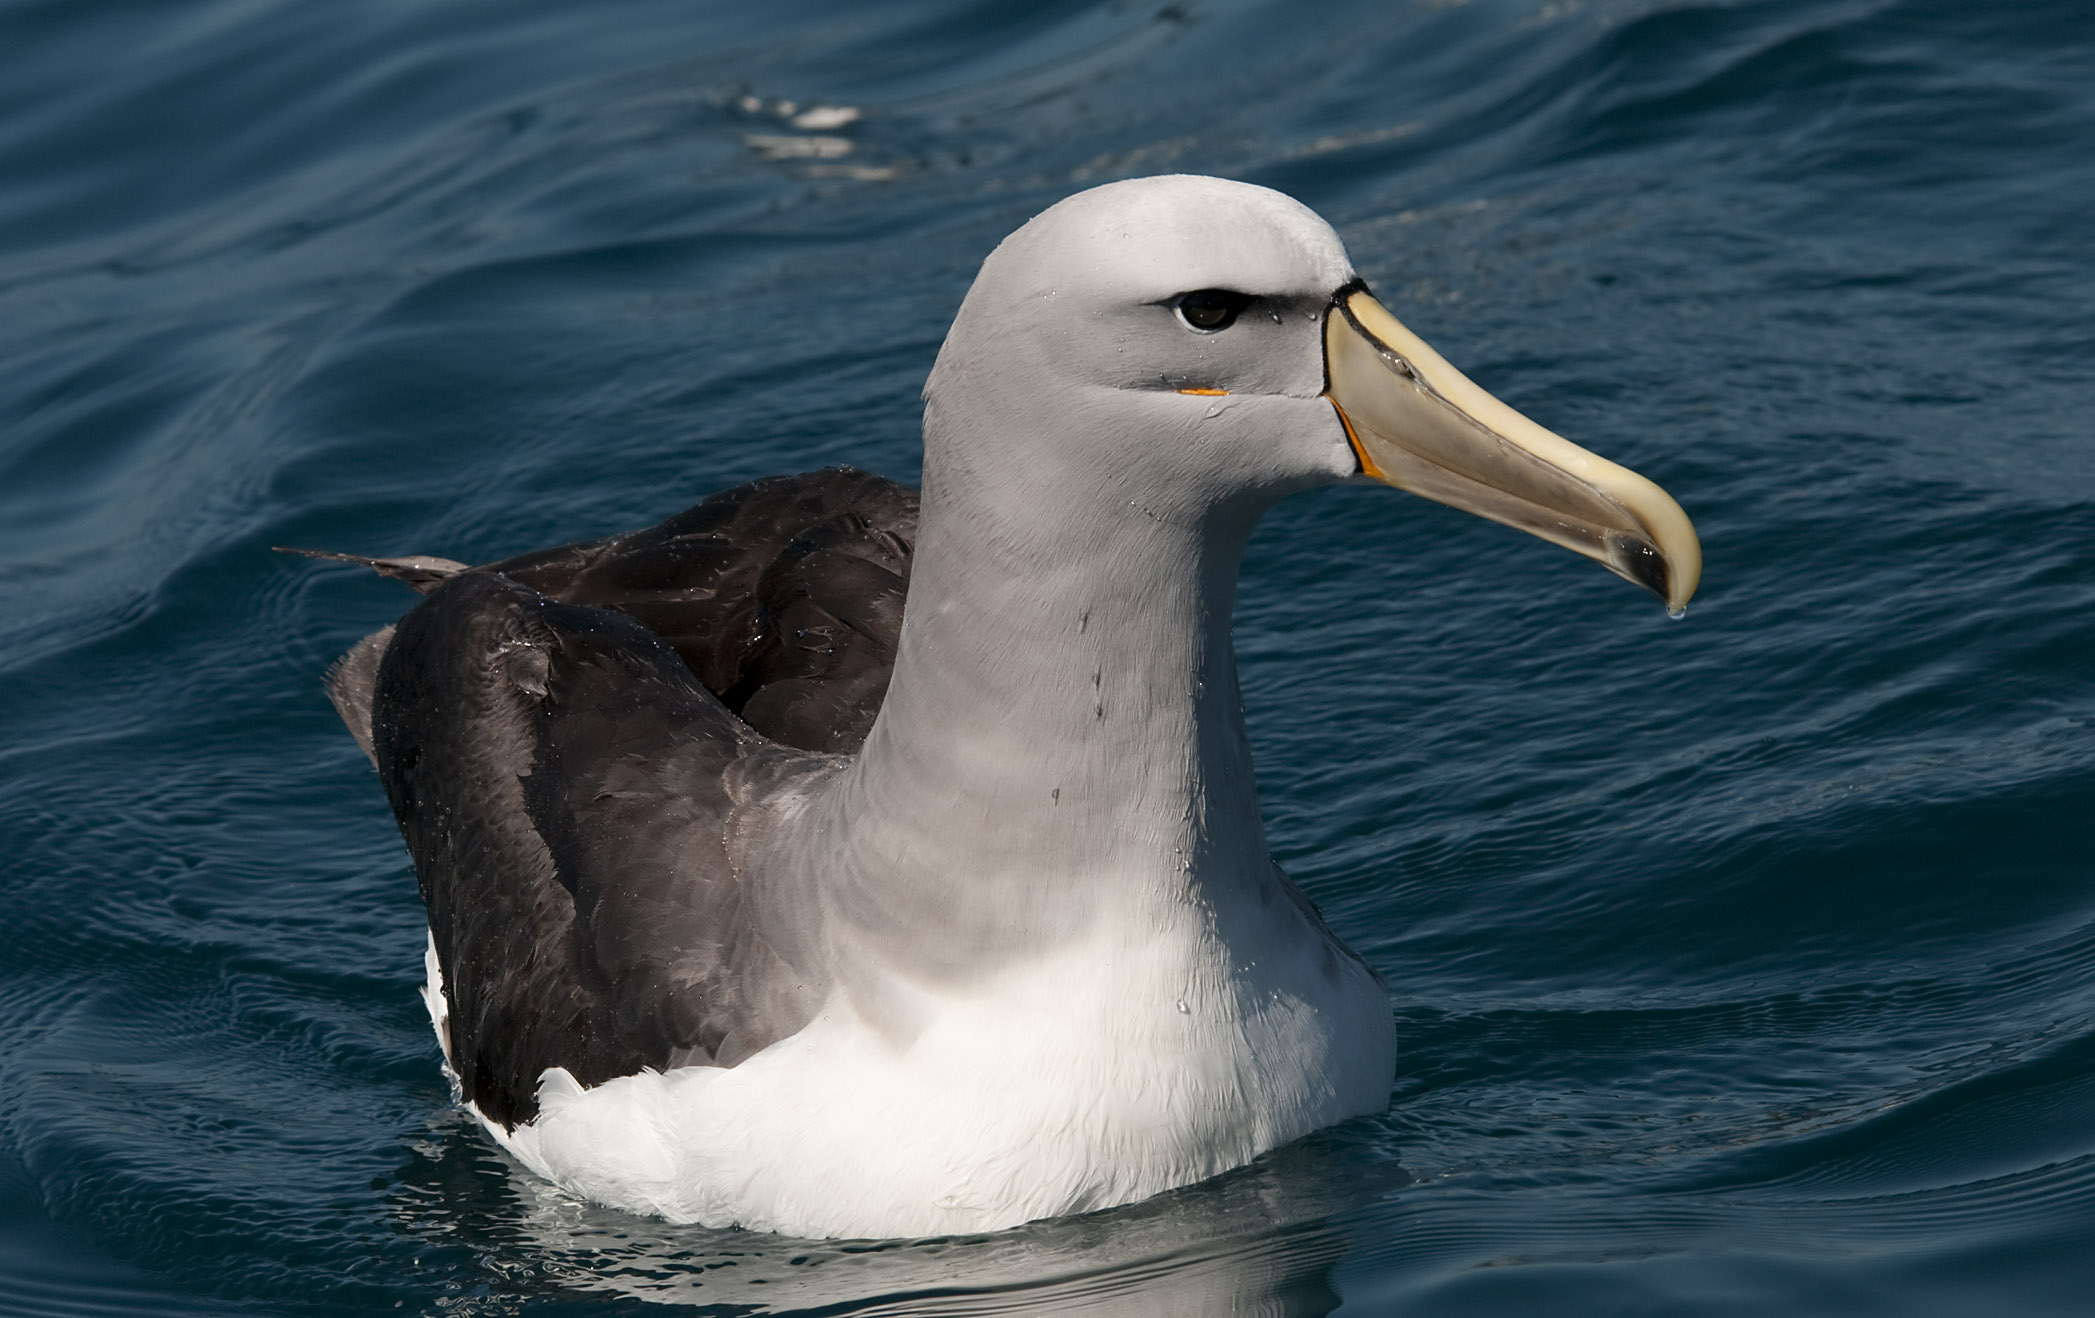 http://nzbirdsonline.org.nz/sites/all/files/Salvin's_Albatross_20110125_Kaikoura_NZ_3.jpg